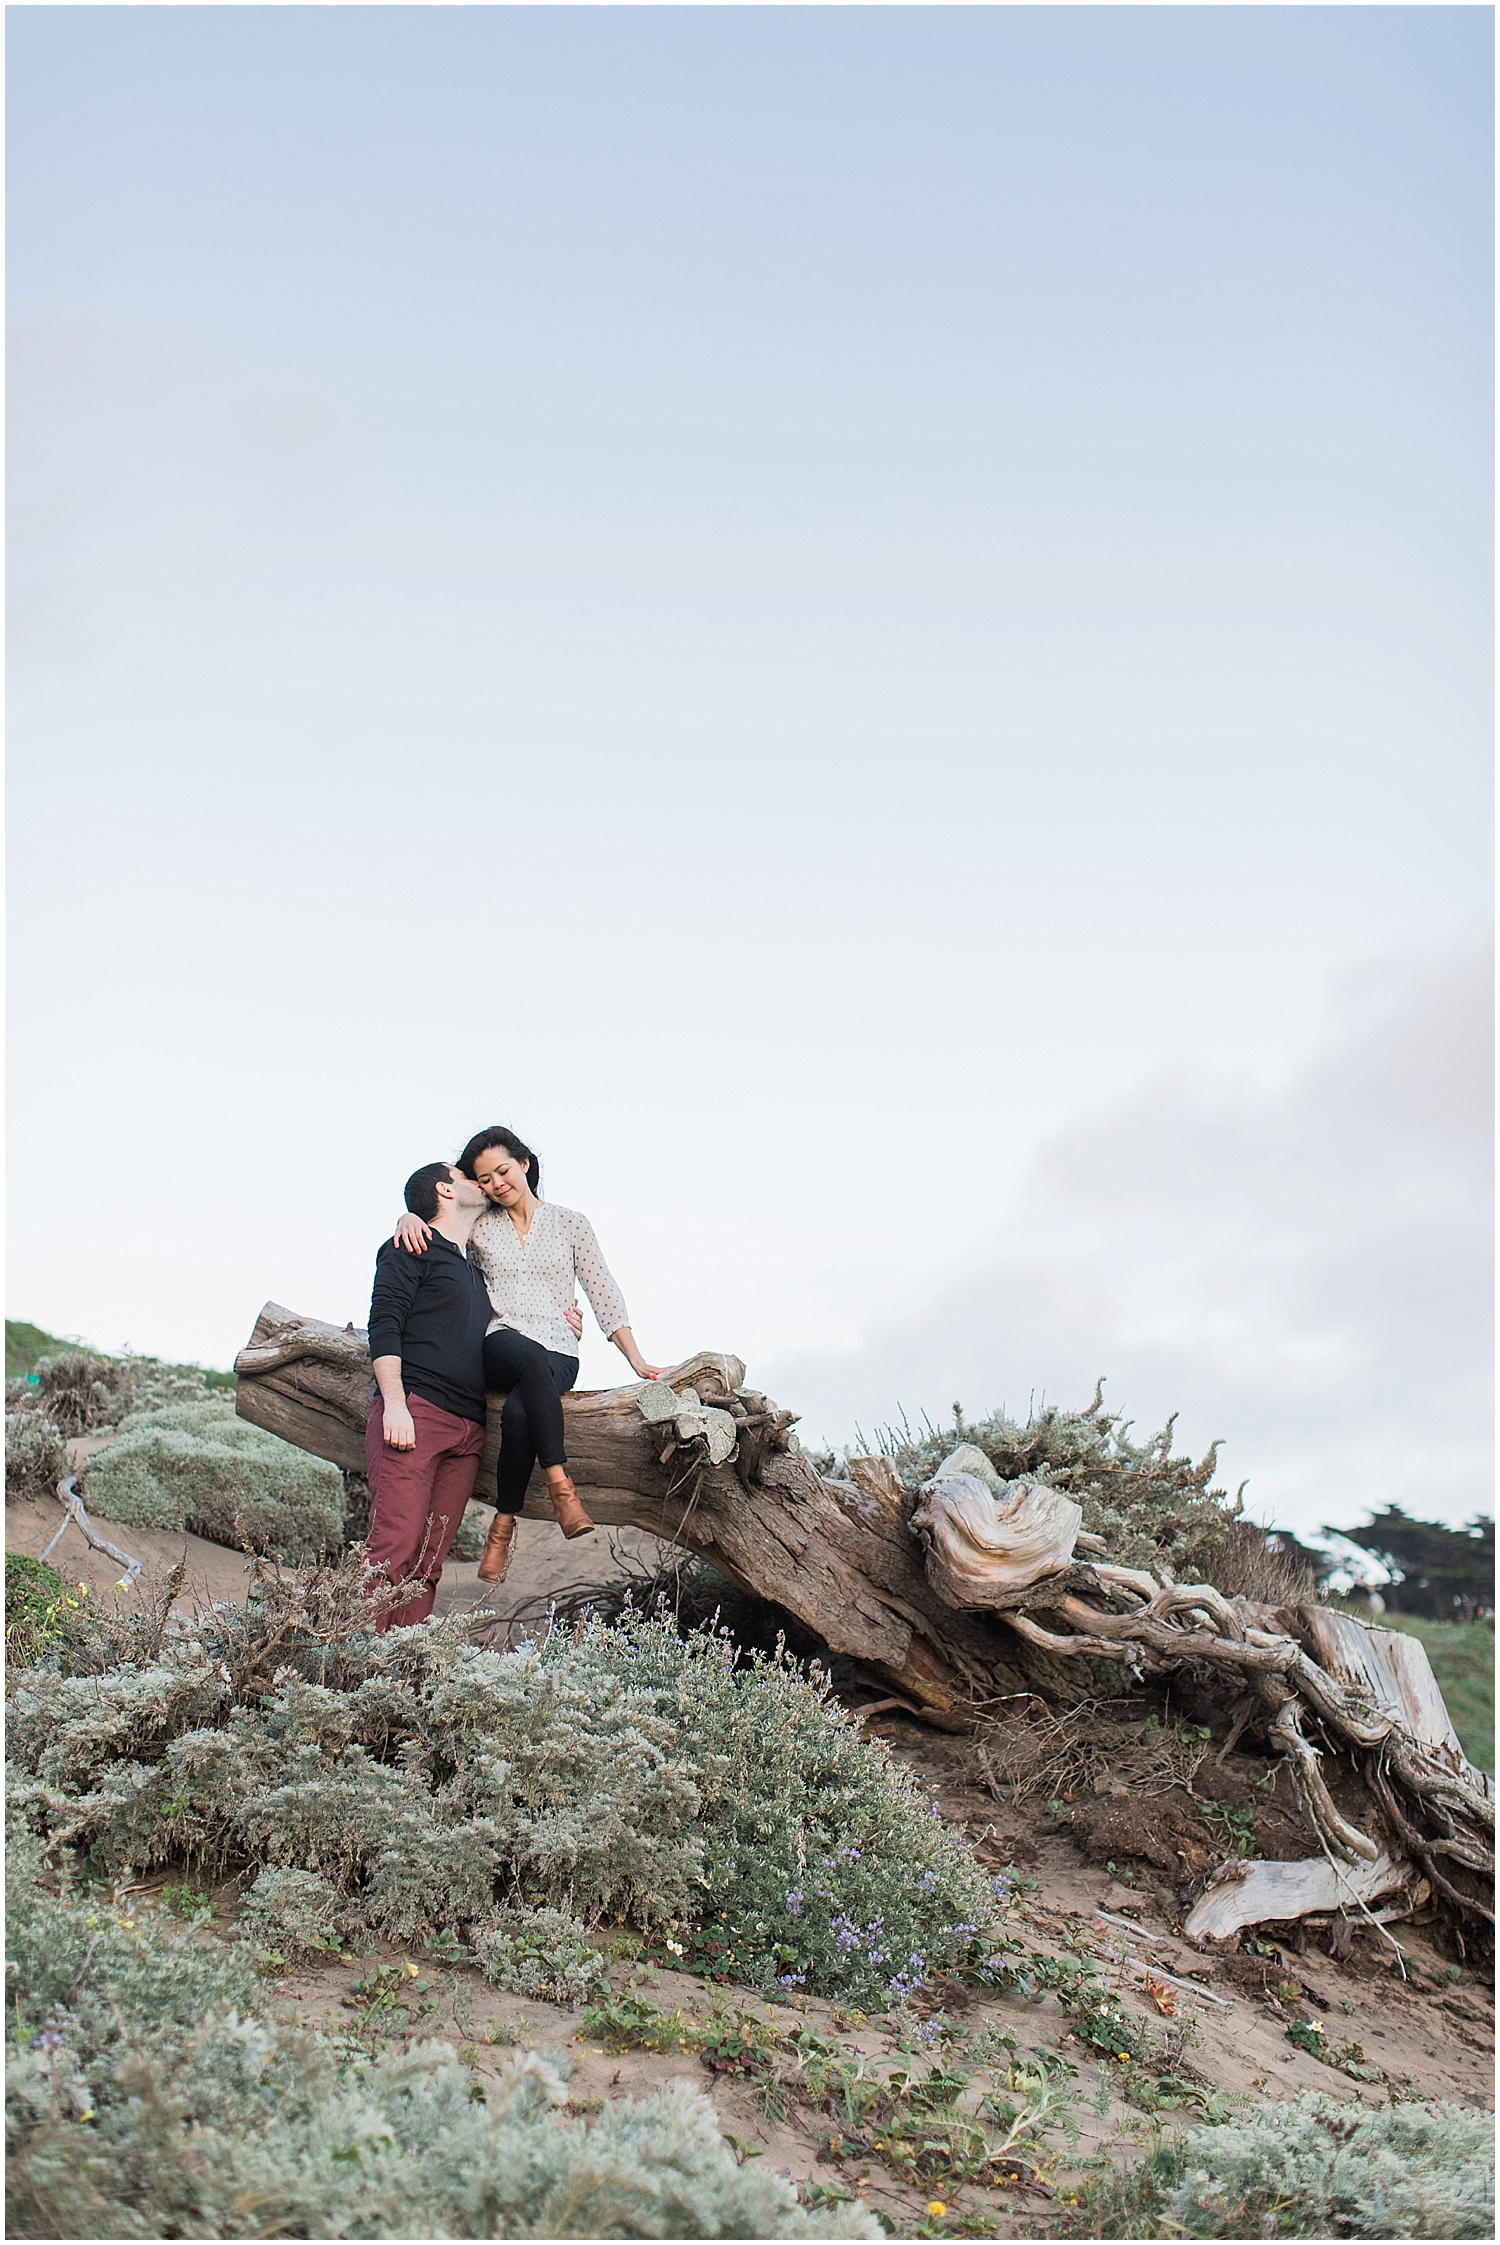 Best-SF-Engagement-Photography-Lands-End-1.jpg